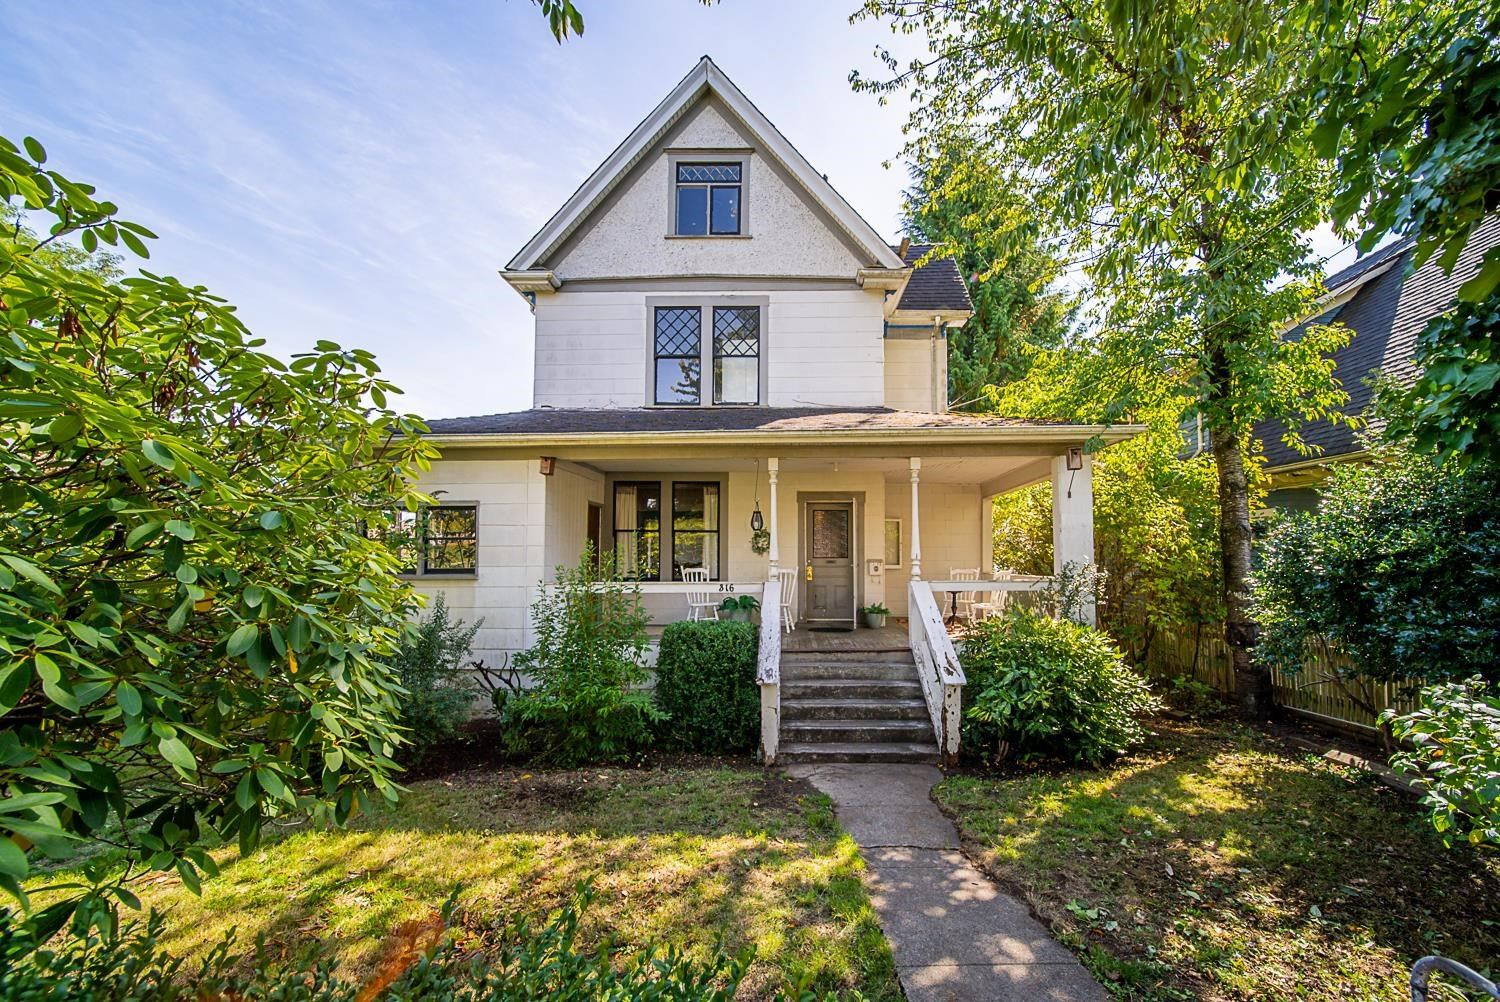 """Main Photo: 316 THIRD Avenue in New Westminster: Queens Park House for sale in """"Queens Park"""" : MLS®# R2619516"""